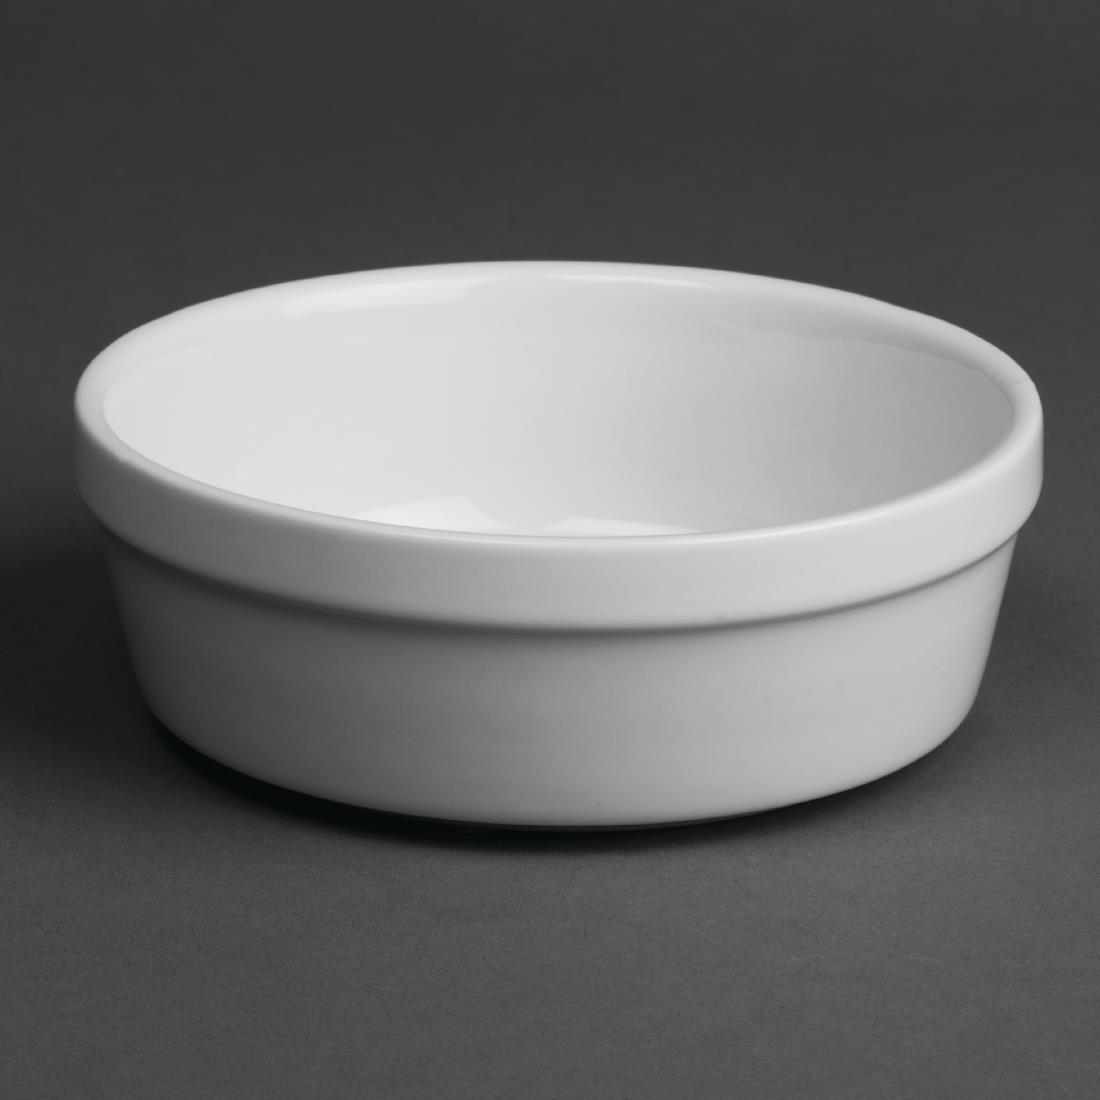 Olympia Whiteware Round Pie Bowls 119mm